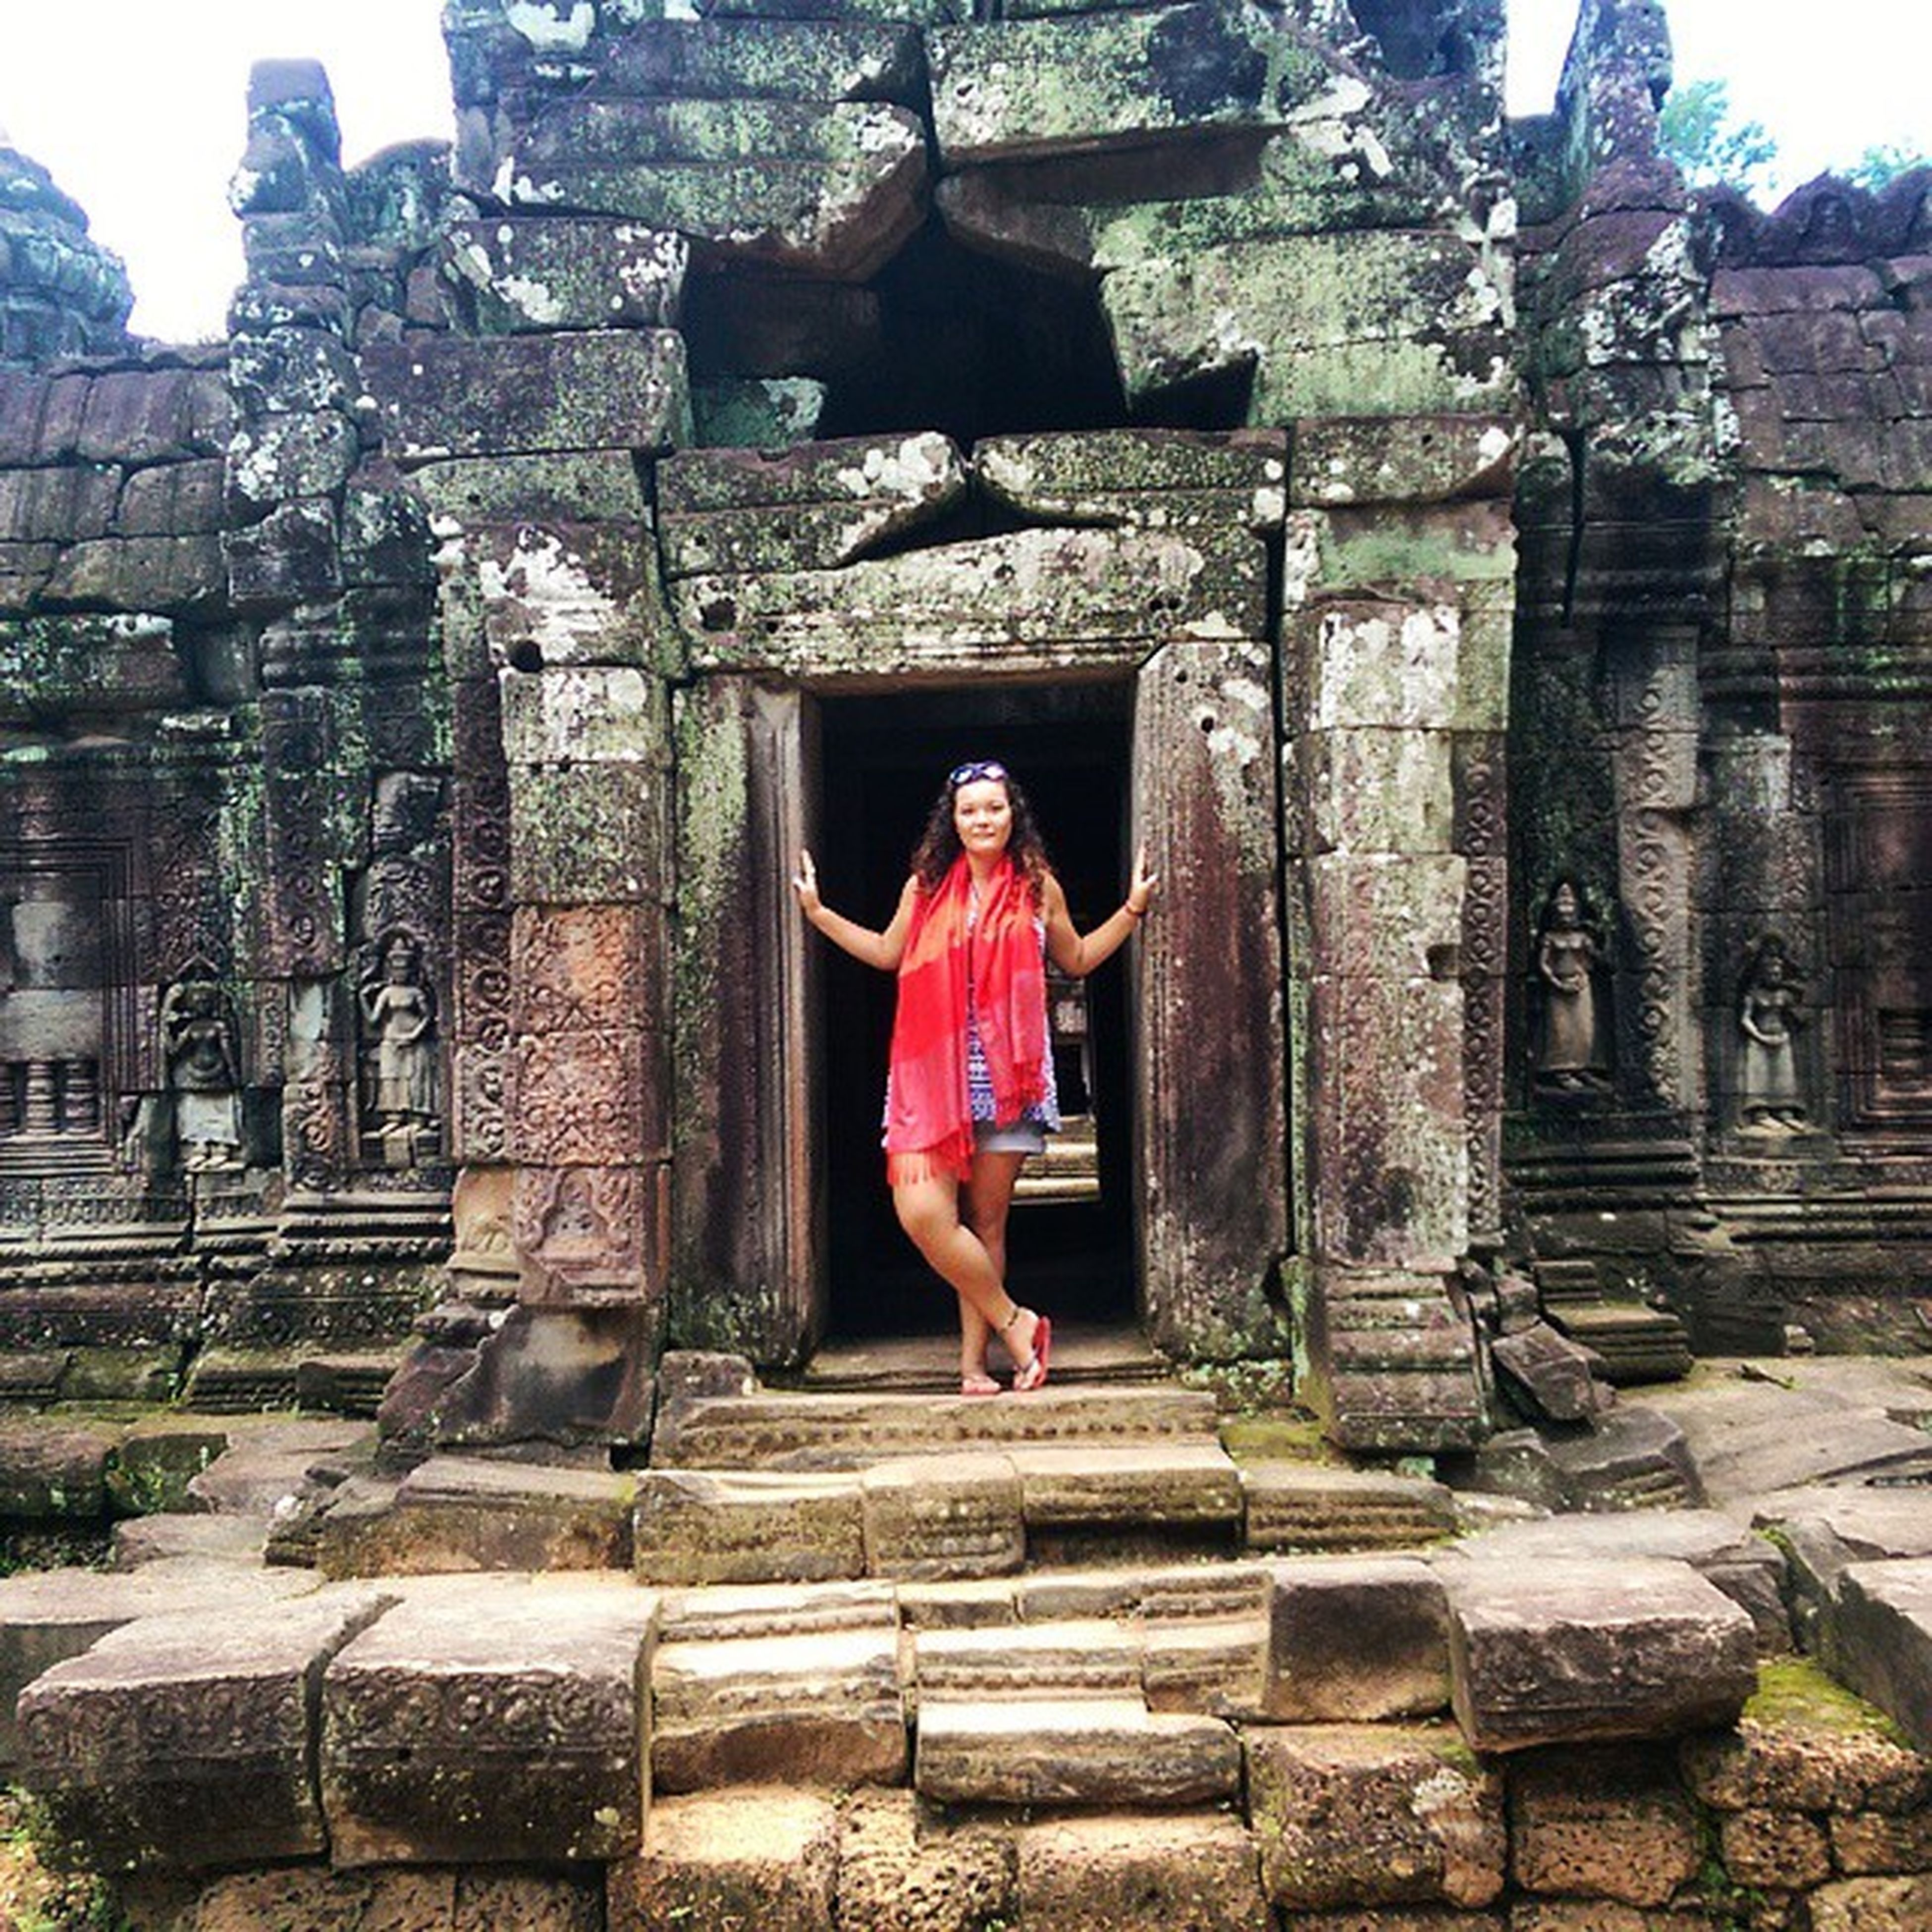 Queen of the ruins. TaSaom Temple Ancient Ruins history beautiful 12century SiemReap Cambodia